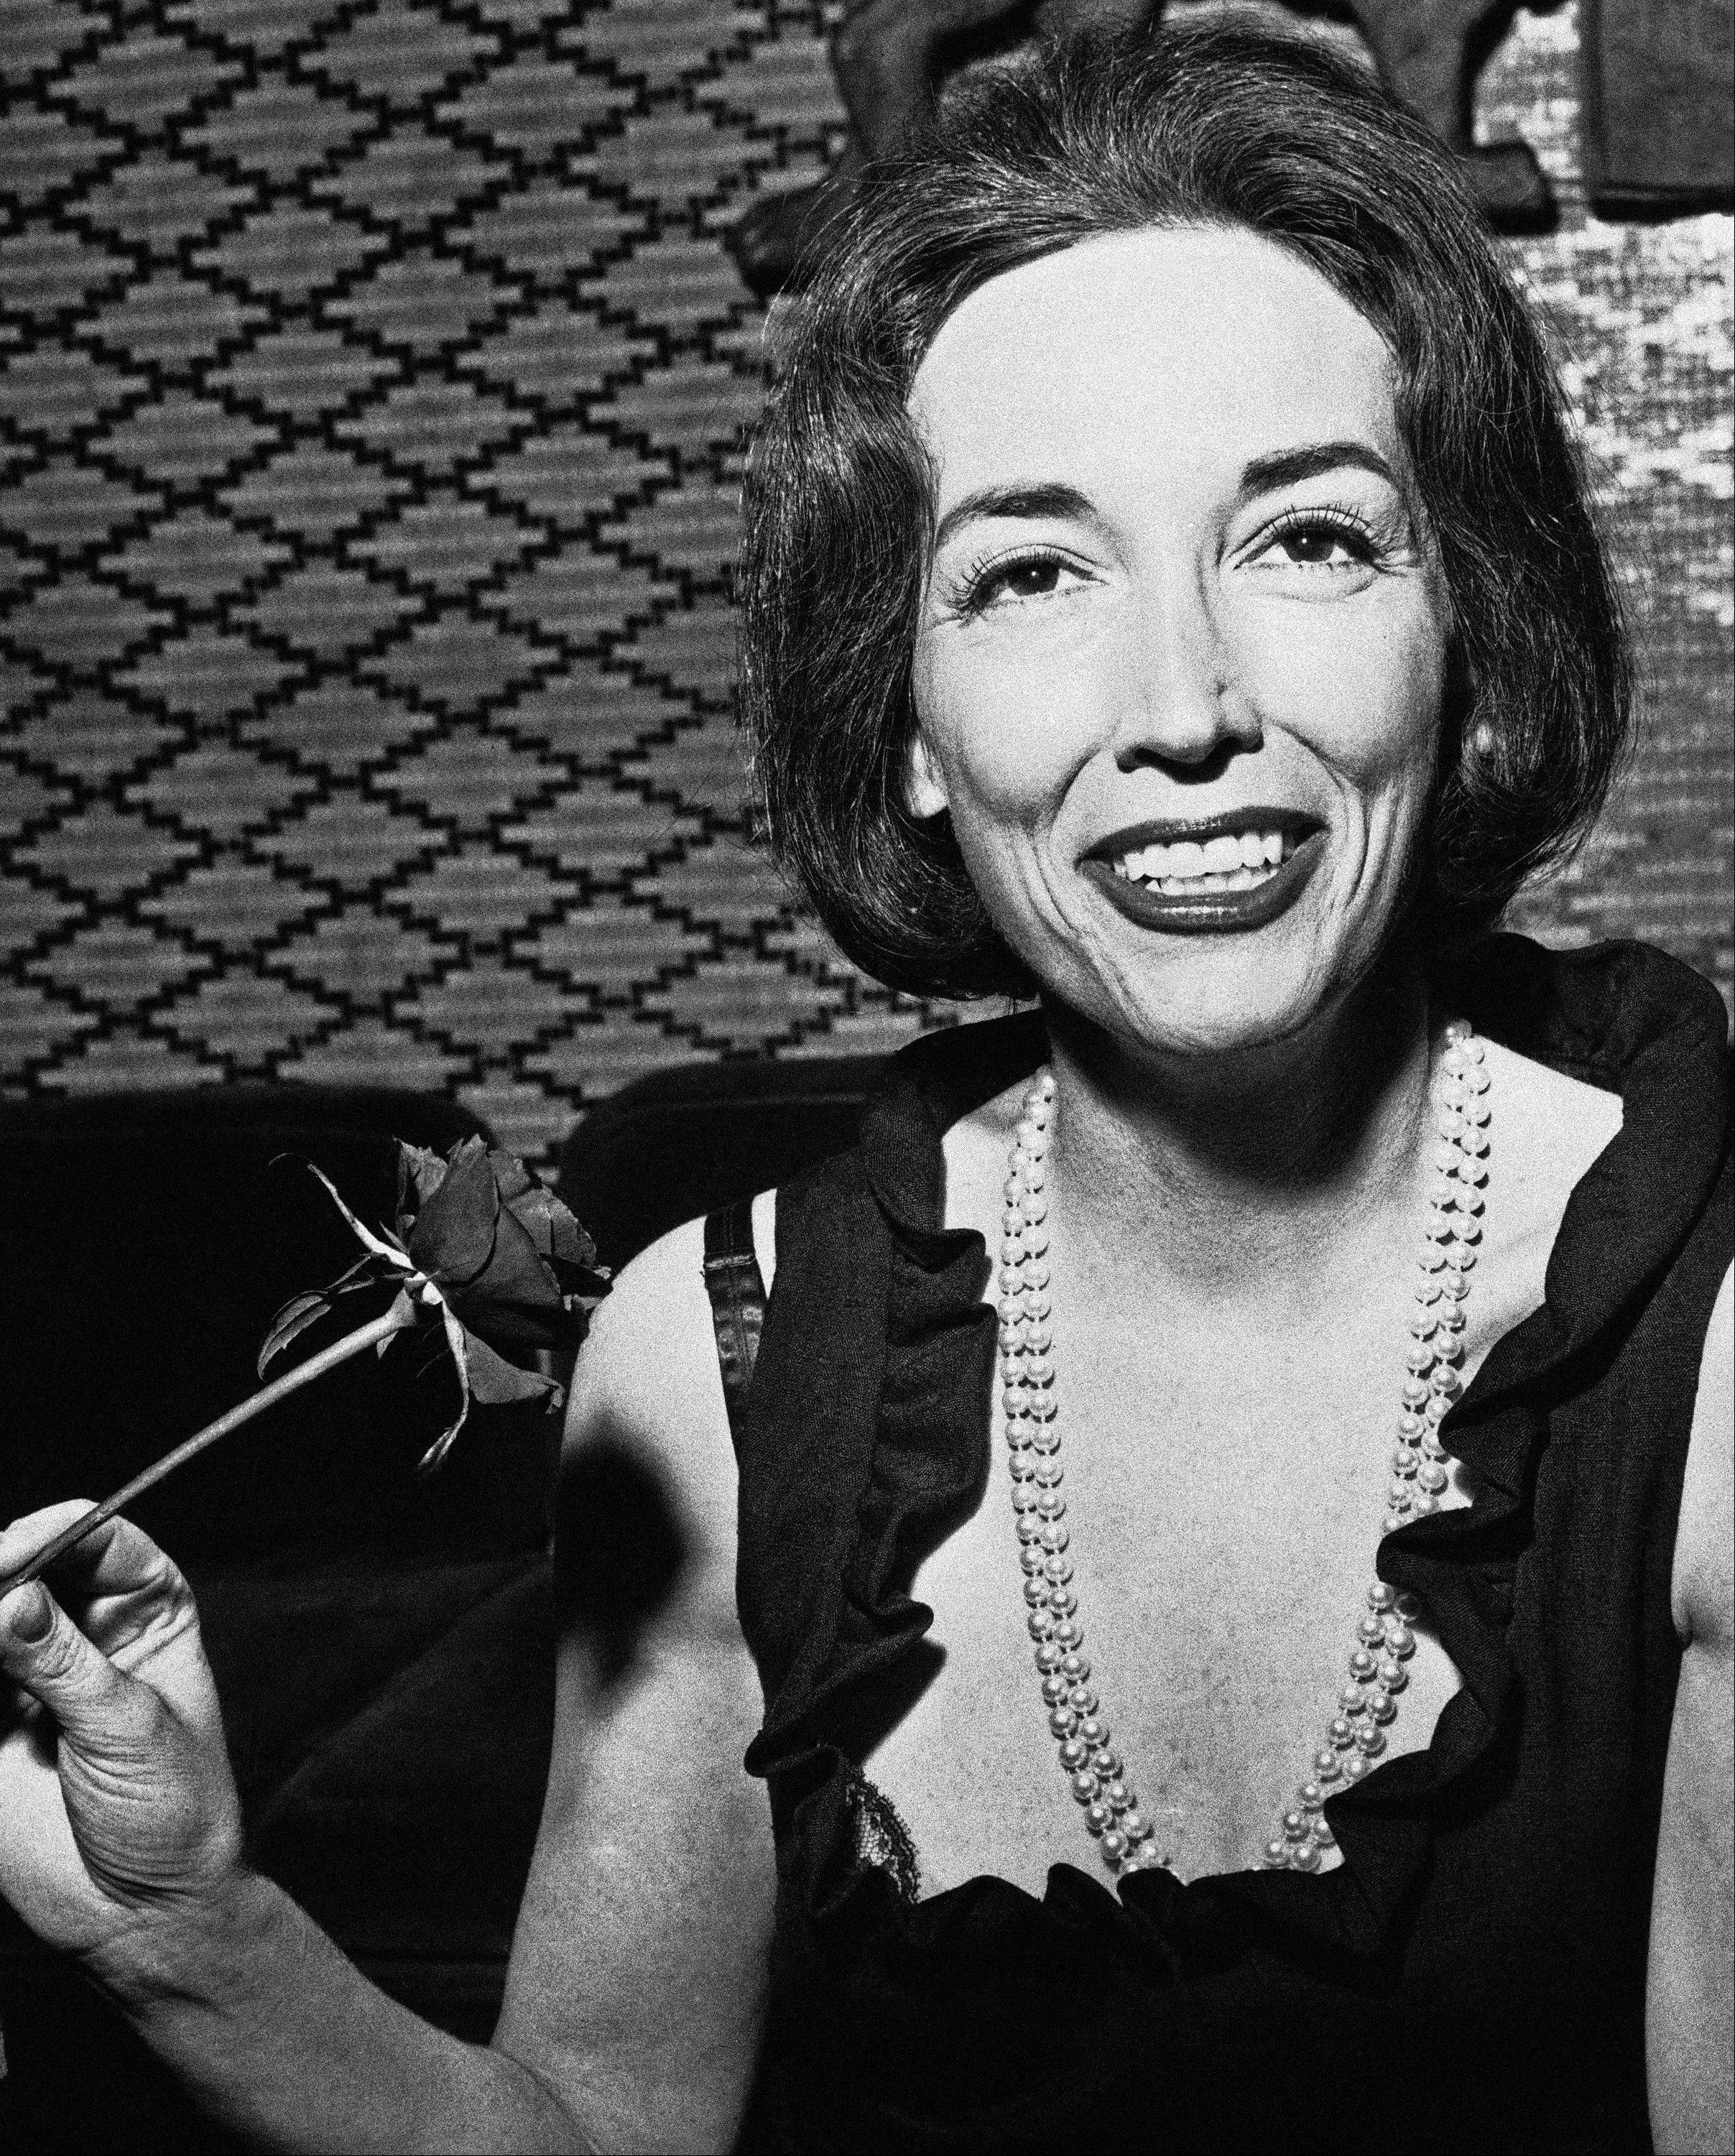 This Nov. 2, 1964 file photo shows author Helen Gurley Brown. Brown, longtime editor of Cosmopolitan magazine, died Monday, Aug. 13, 2012 at a hospital in New York after a brief hospitalization. She was 90.